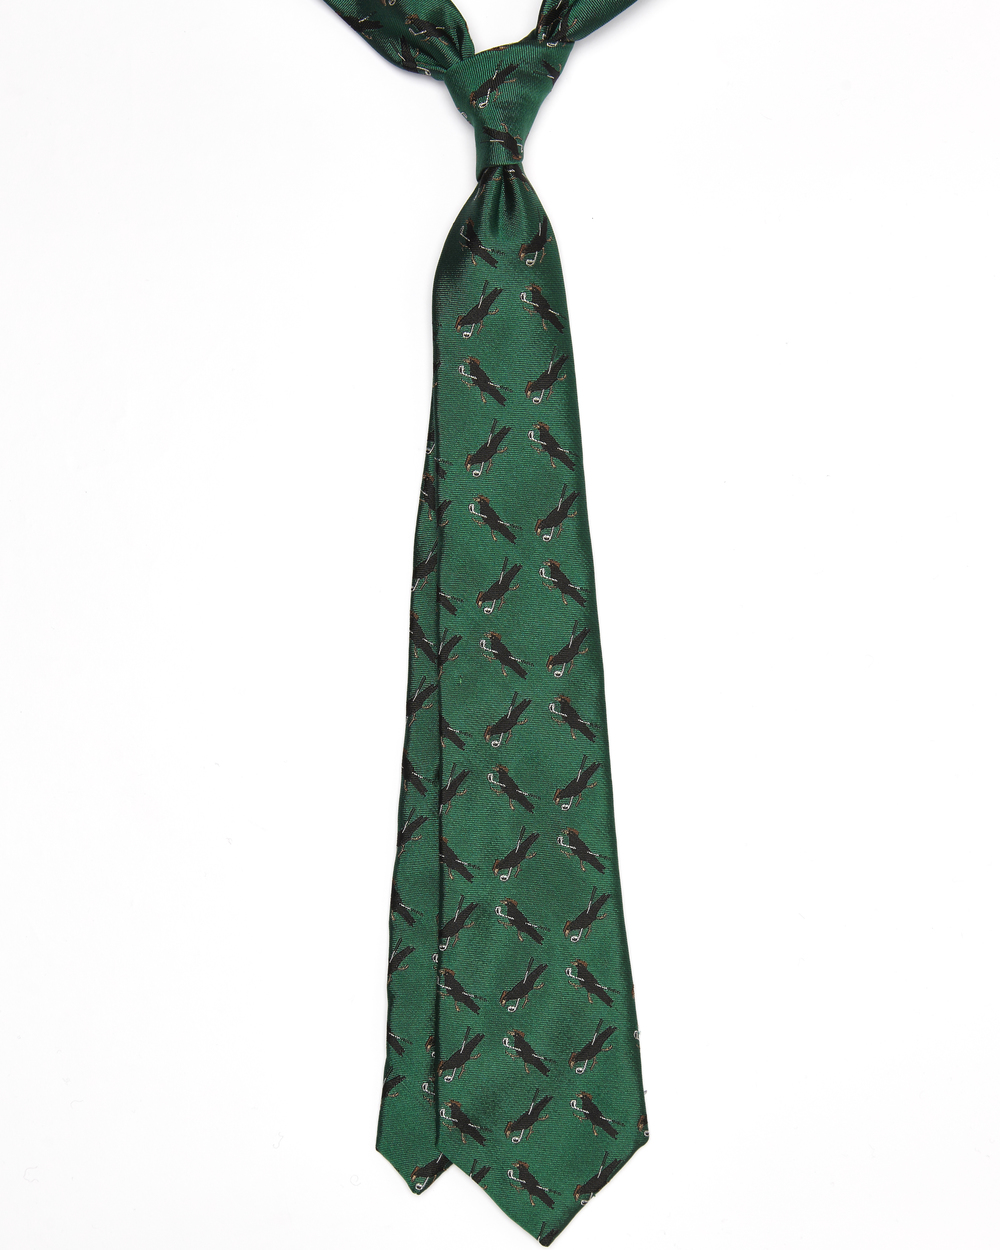 Ernest Tie | Silk Jacquard of Crows & Golf Club | Colour: Emerald Green, Black  & White